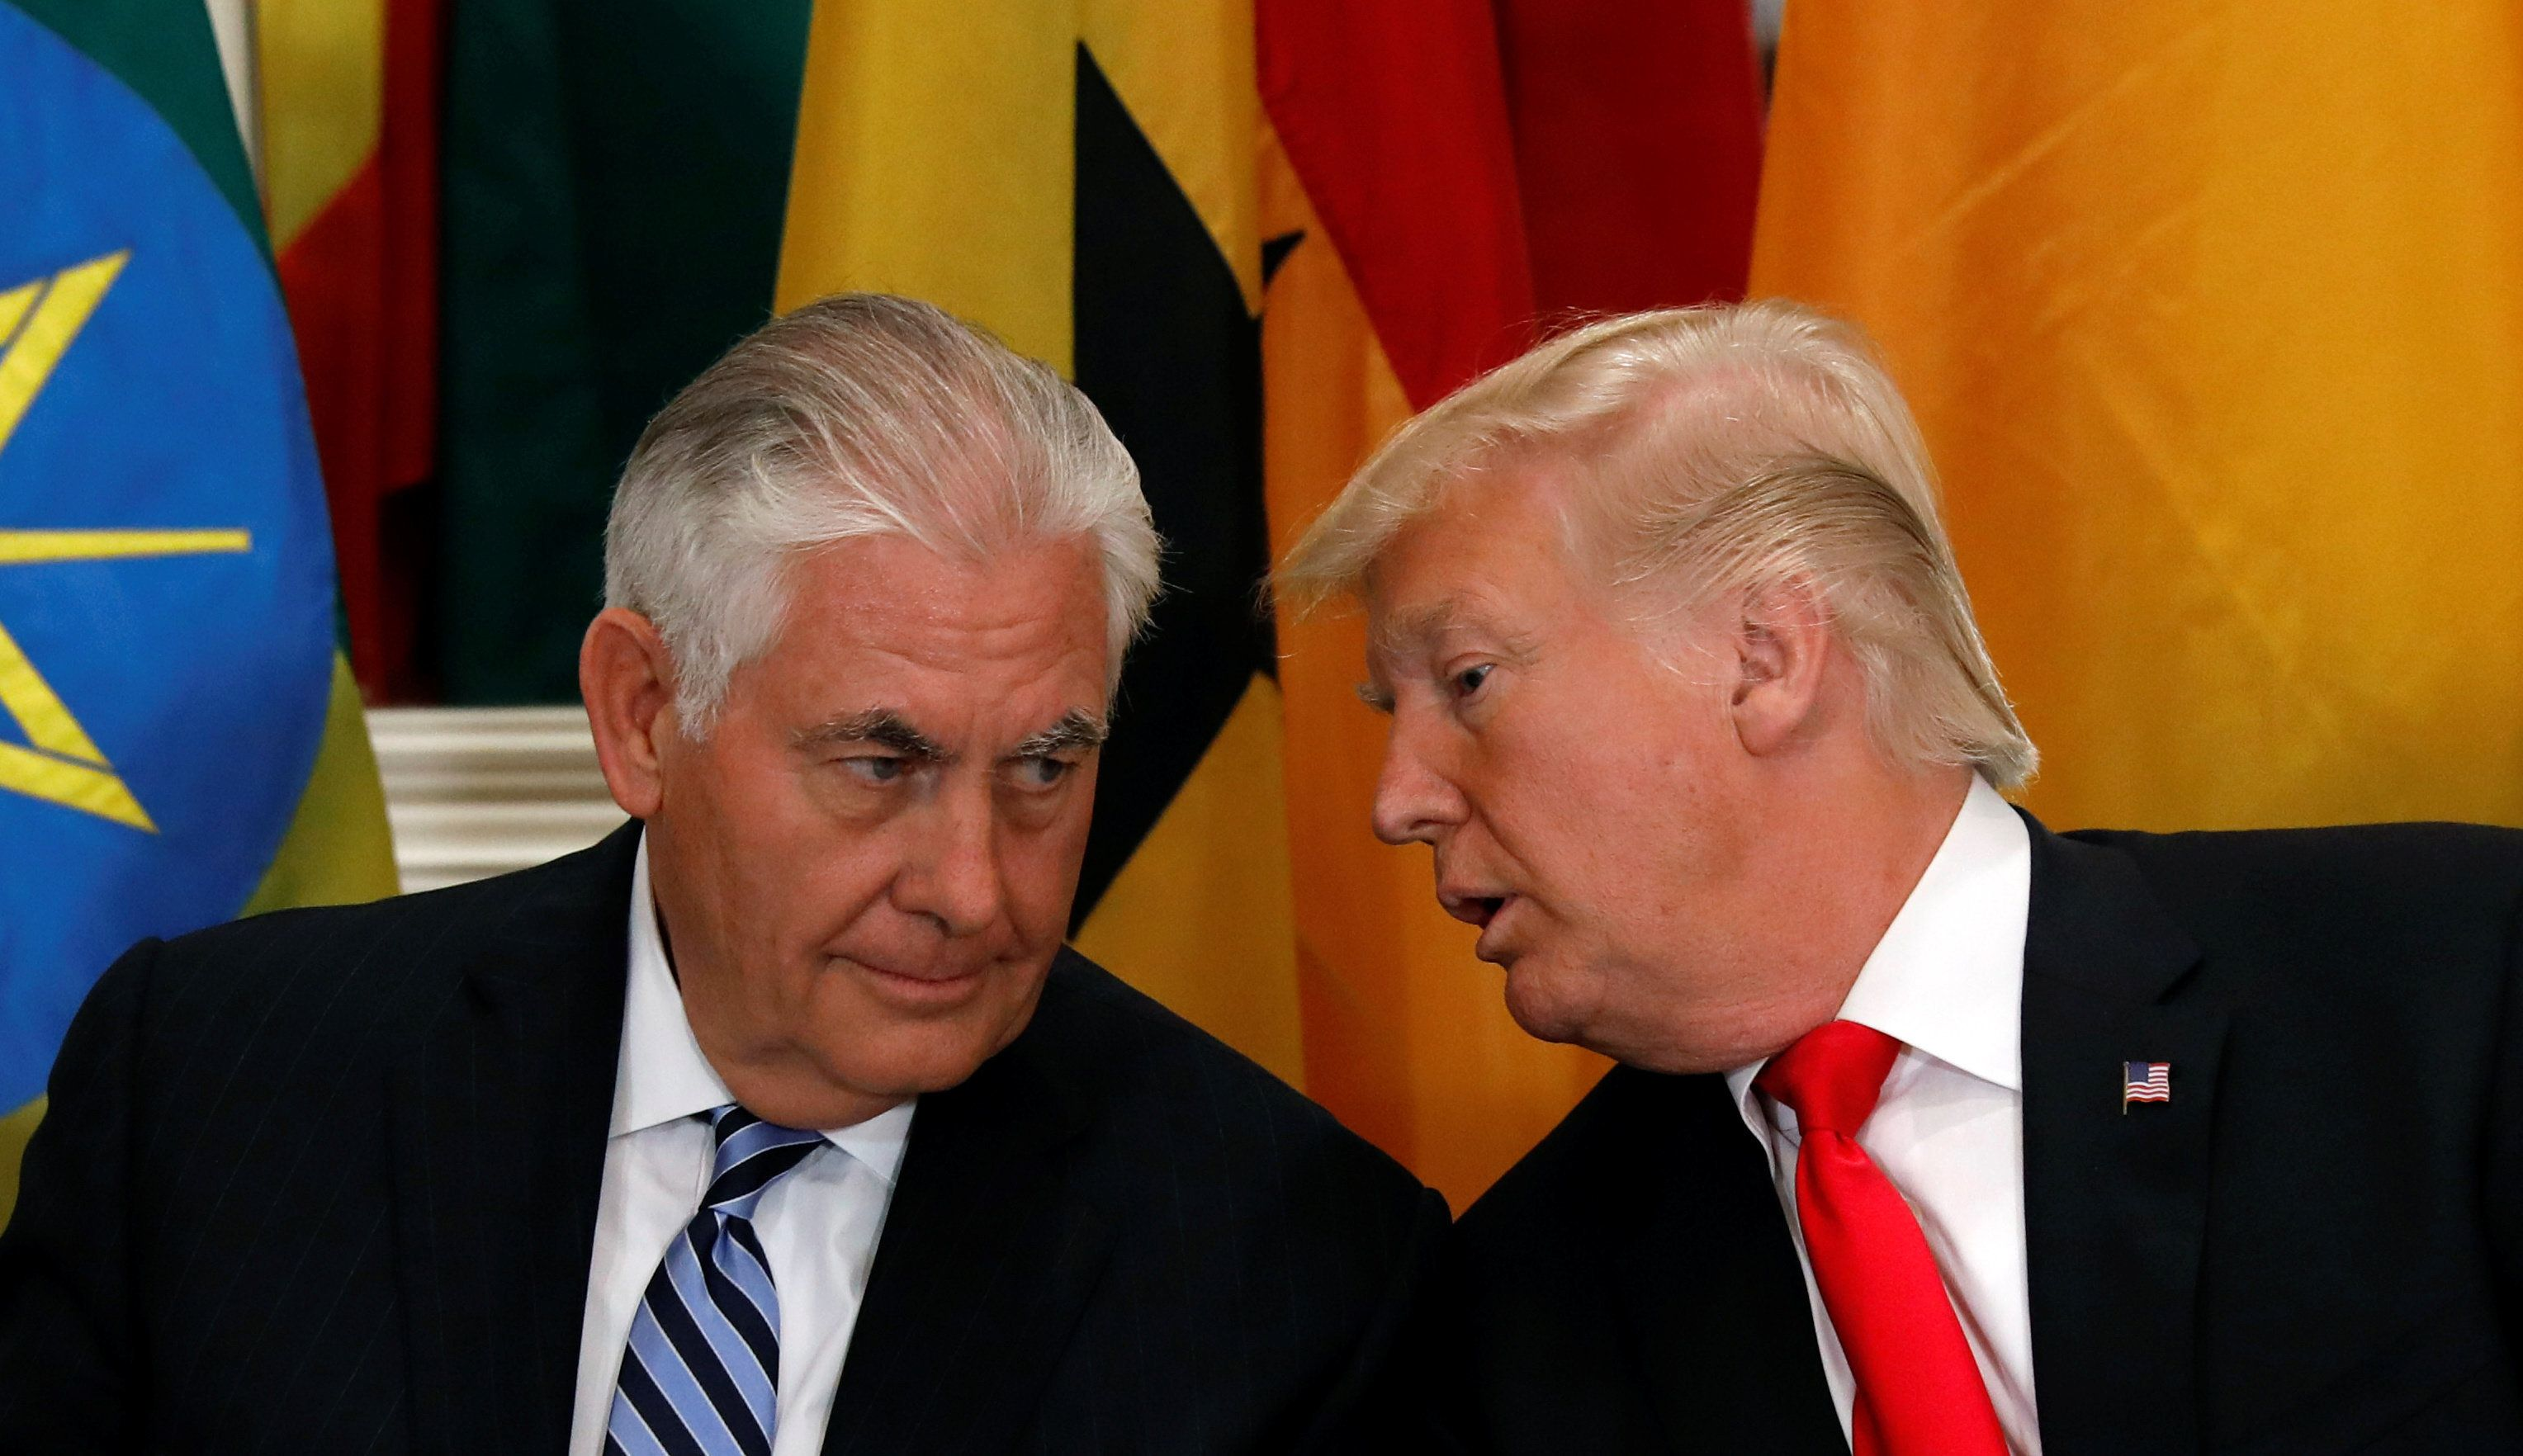 Rex Tillerson cleans up after Trump on Iran but dodges 'castration' questions